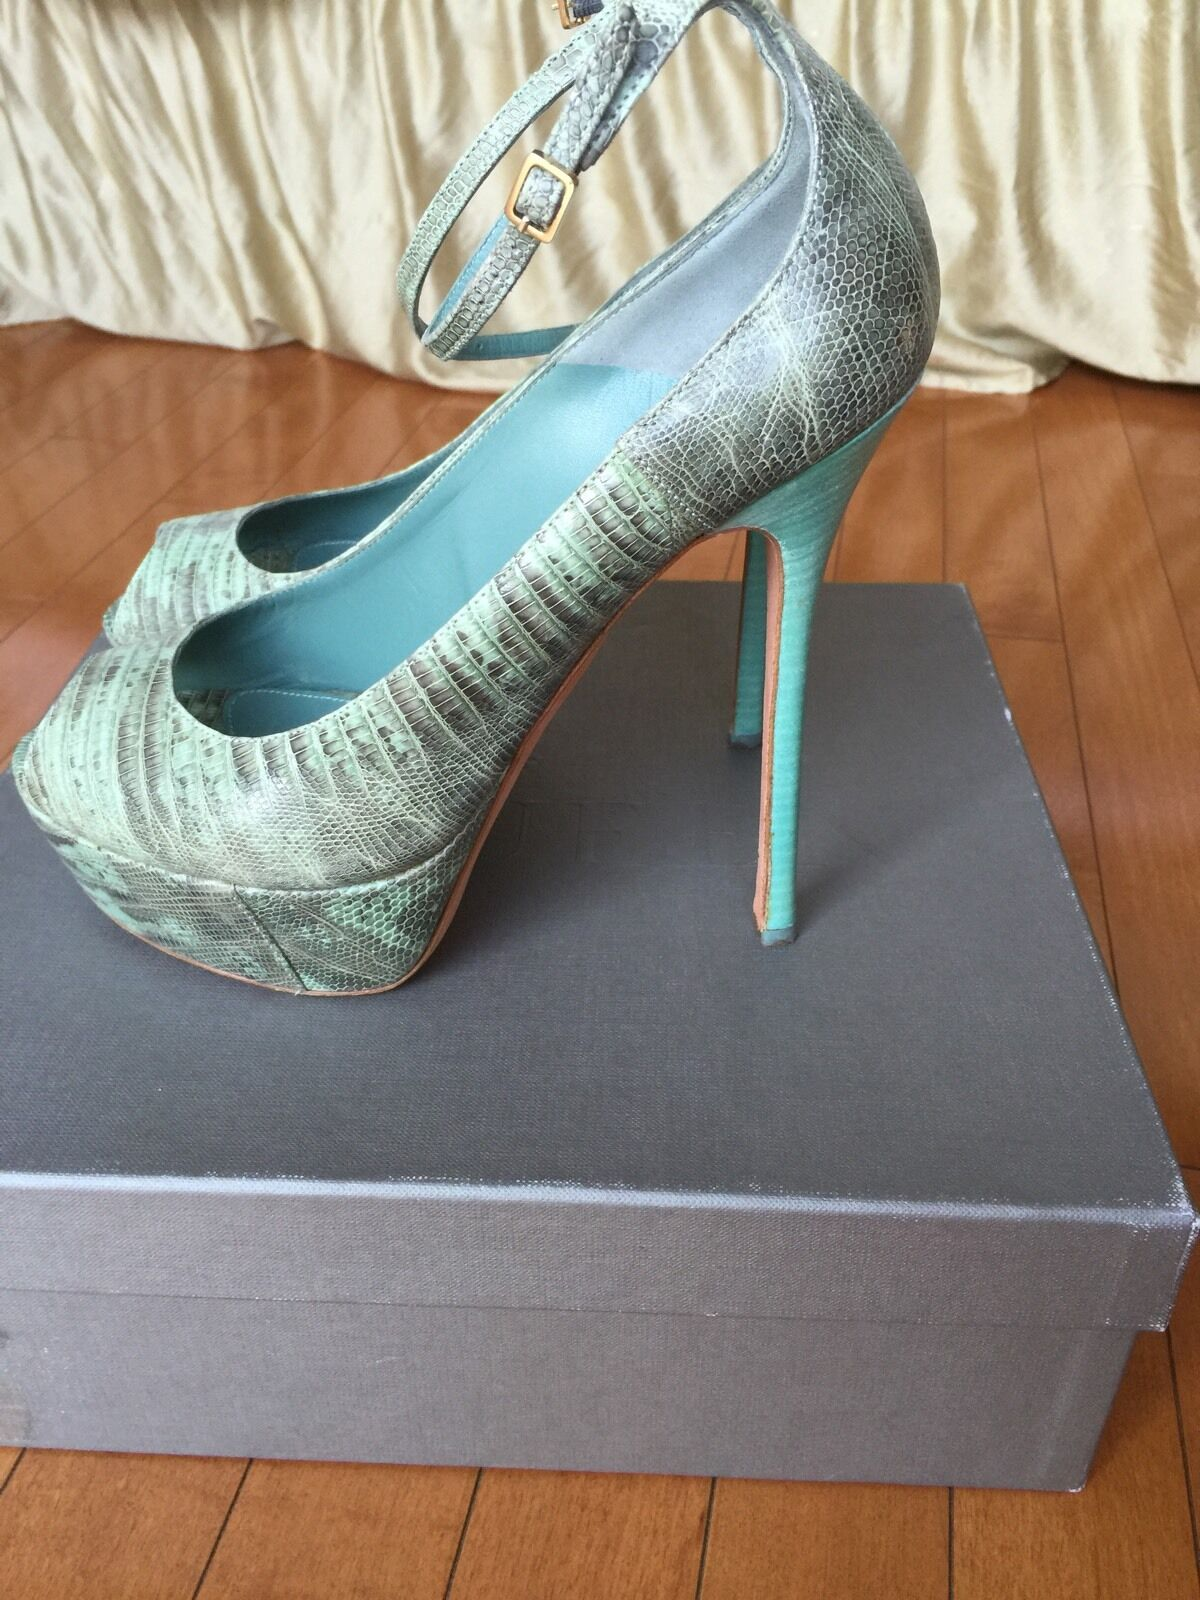 McQueen Leather Leather Leather peep-toe platform pumps with ankle strap 8 8.5 fb4ba5